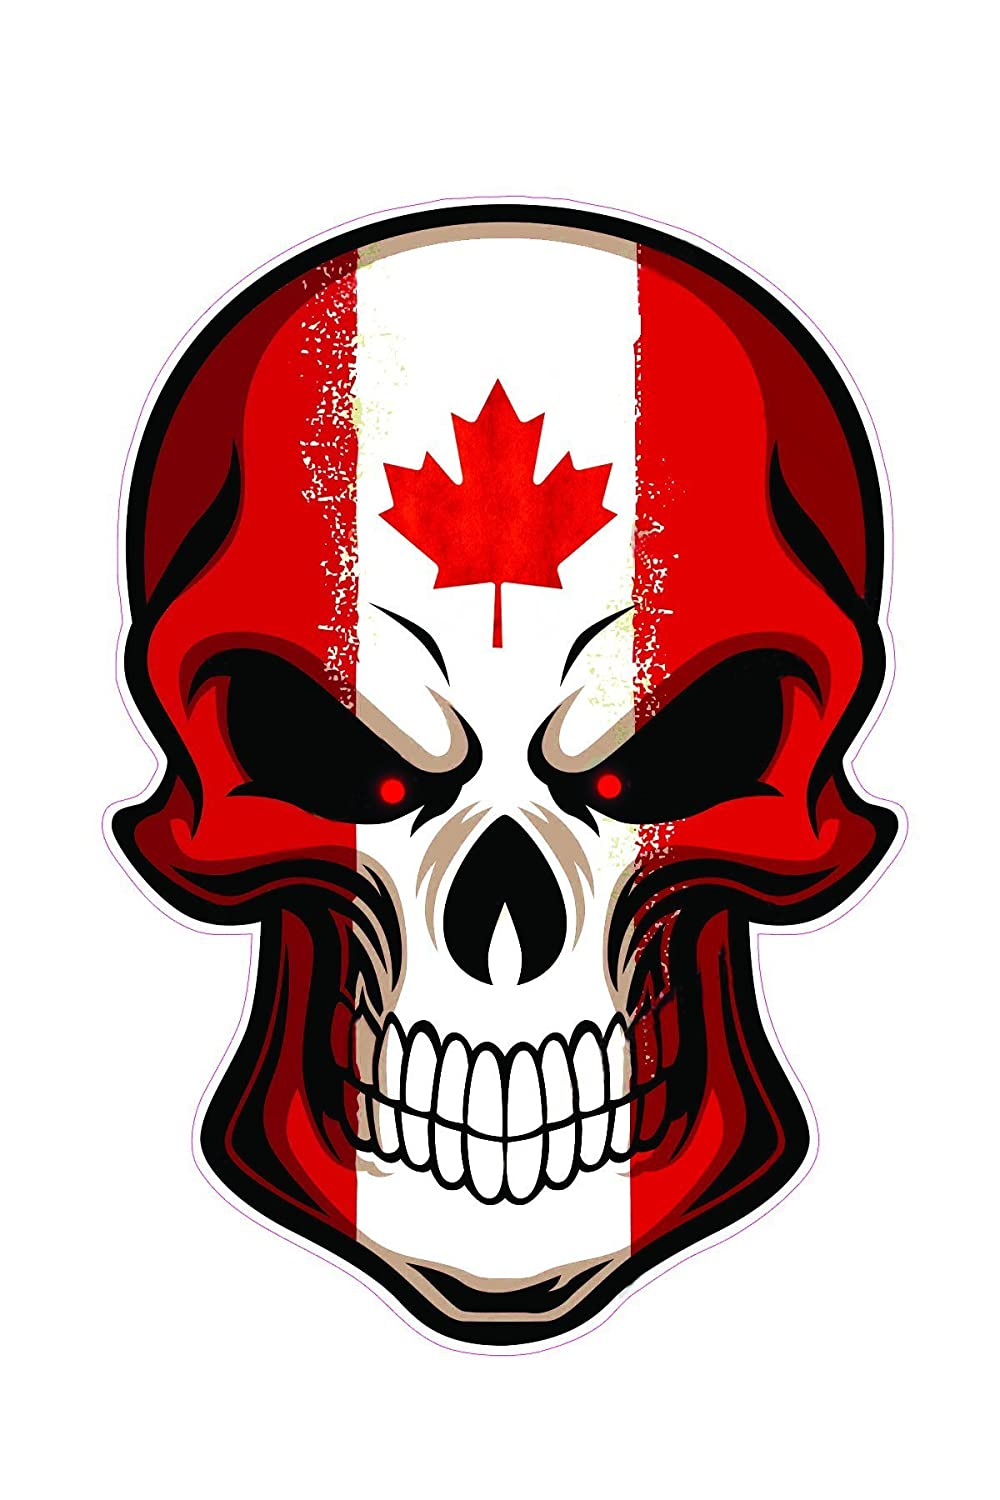 Karshop the canadian skull pack of 2 sticker 6 x 4 laptop wall indoor and out door halloween or daily use vinyl sticker removable sticker amazon ca